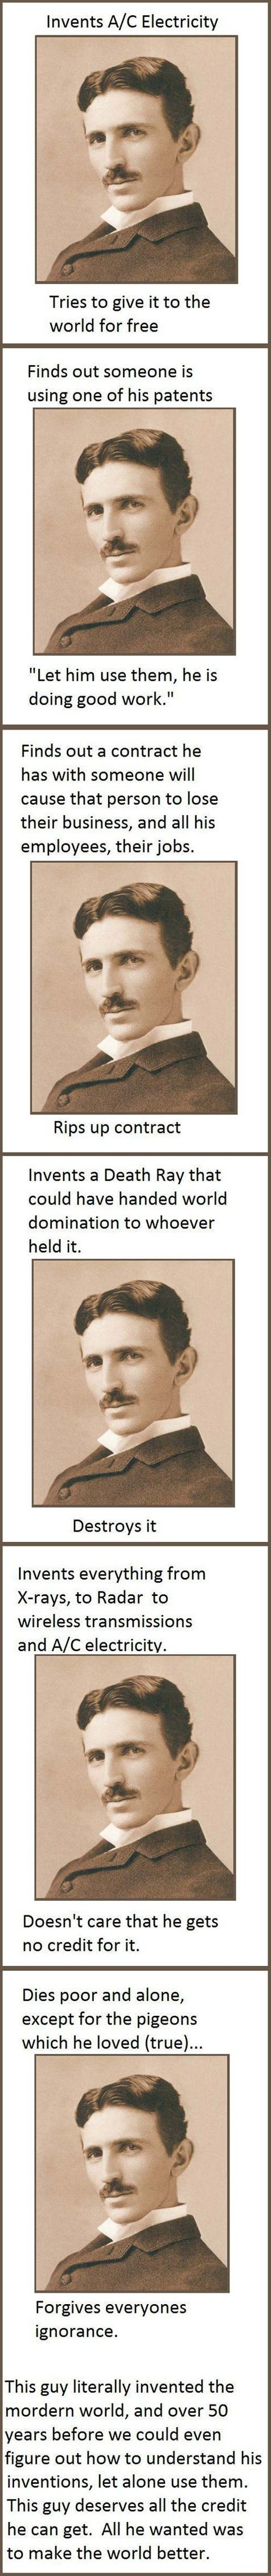 Tesla is the greatest mind the universe has known. If you have not read about him, I encourage you to do so. You will be fascinated.